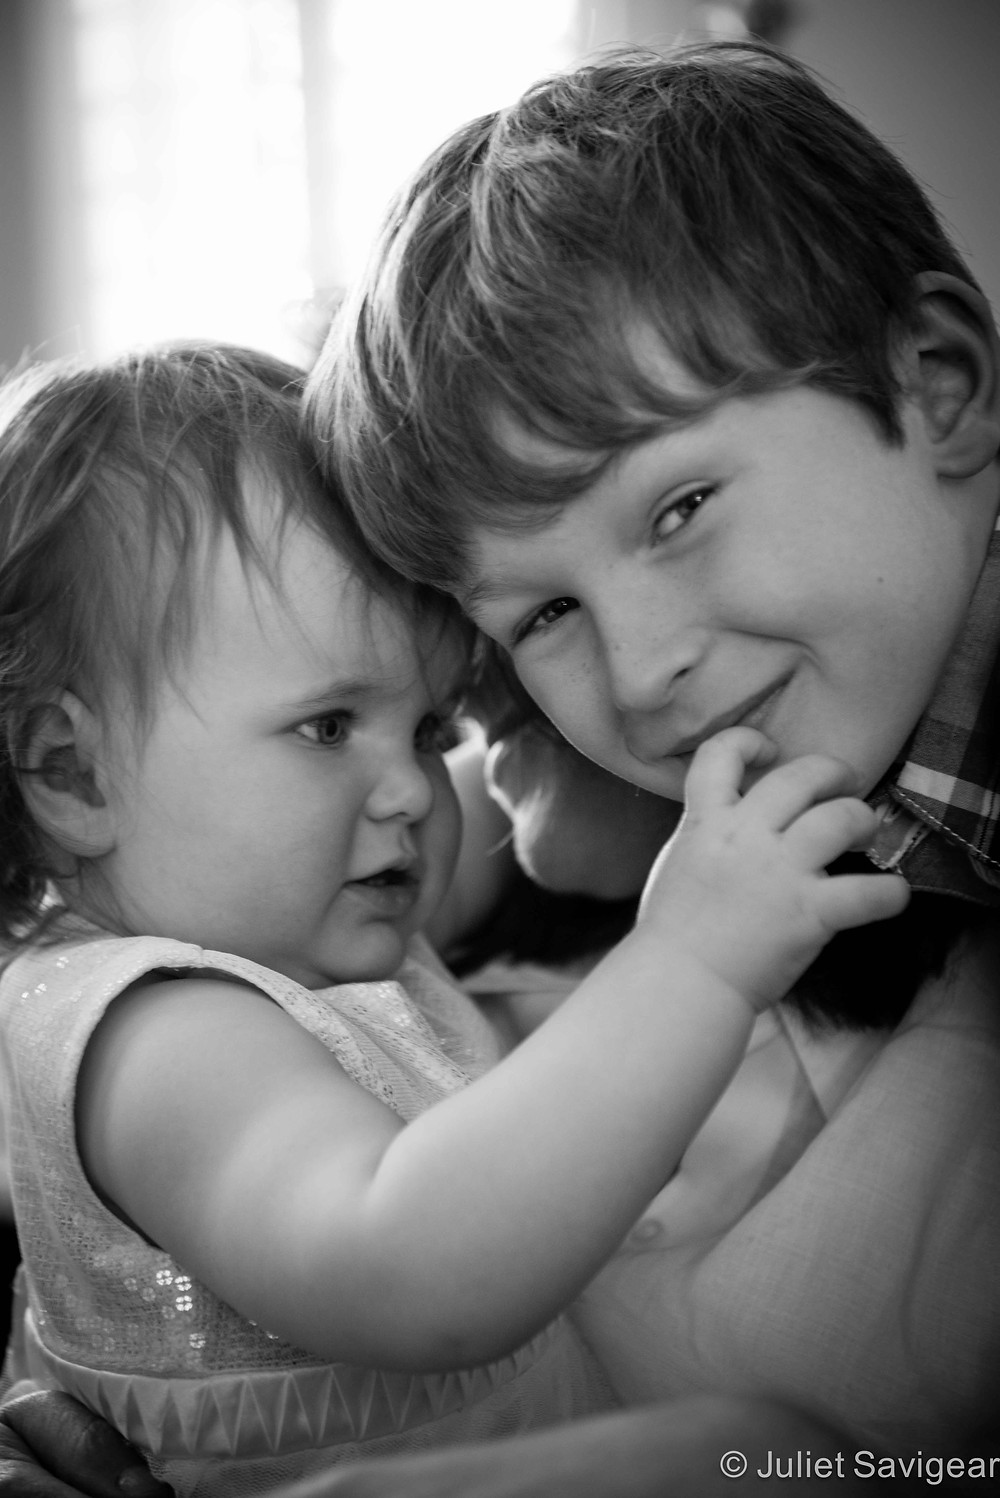 Don't Mess With Your Little Sister - Children's Photography, Clapham